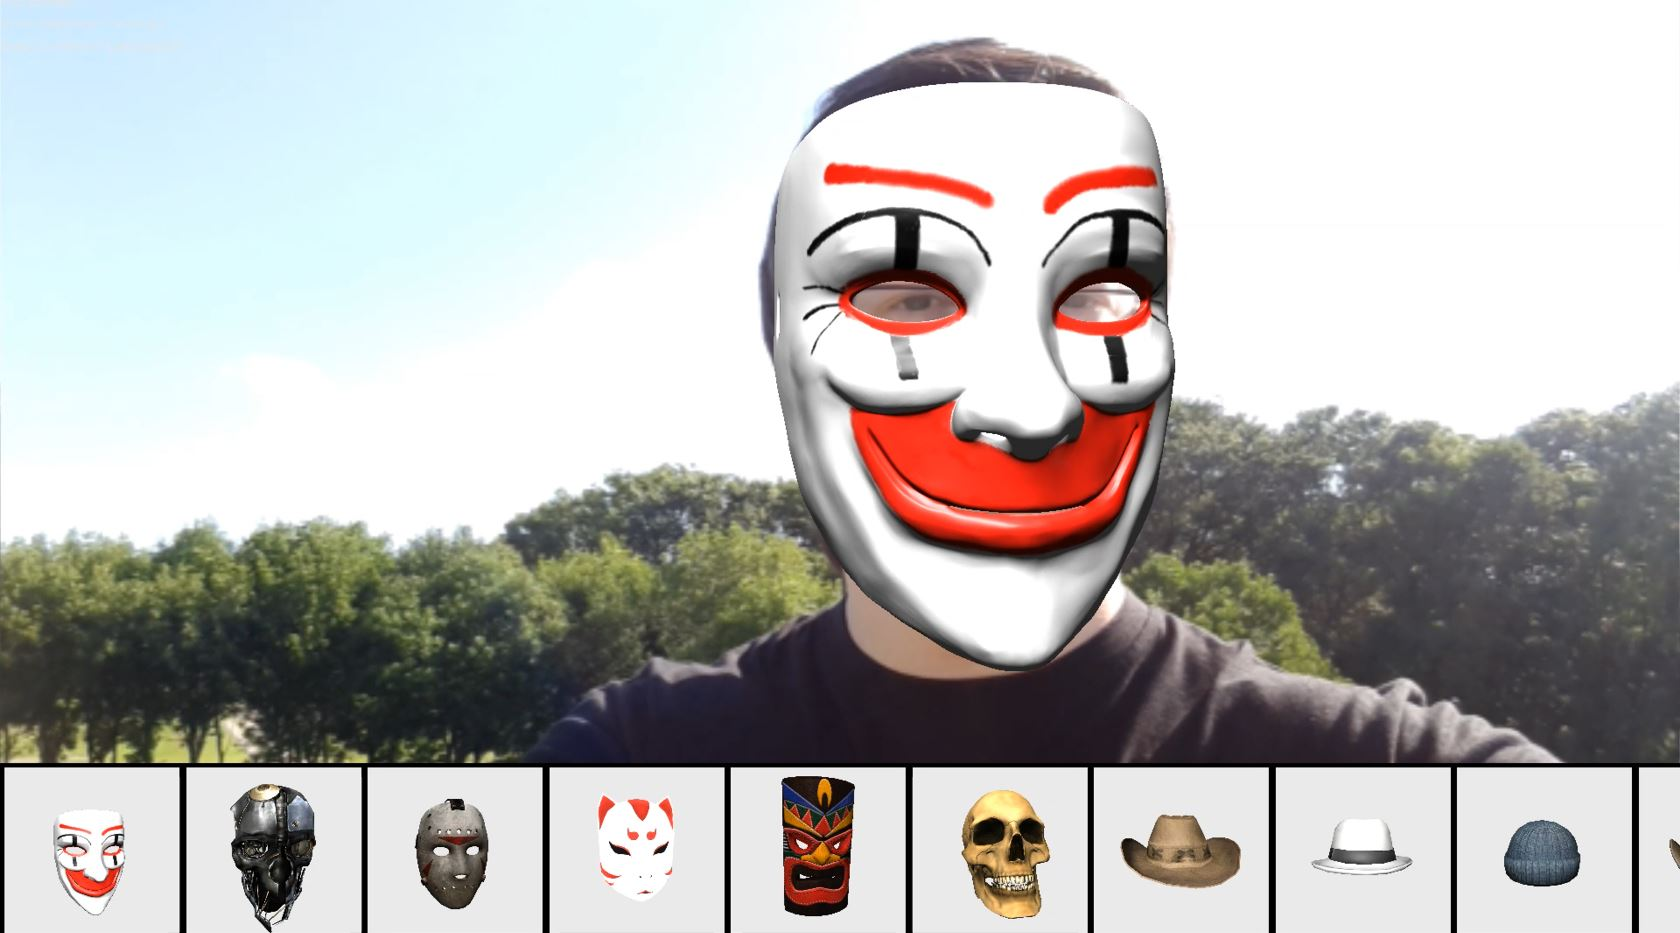 Demo] Augmented Reality Face Tracking using Mobile Devices - ART